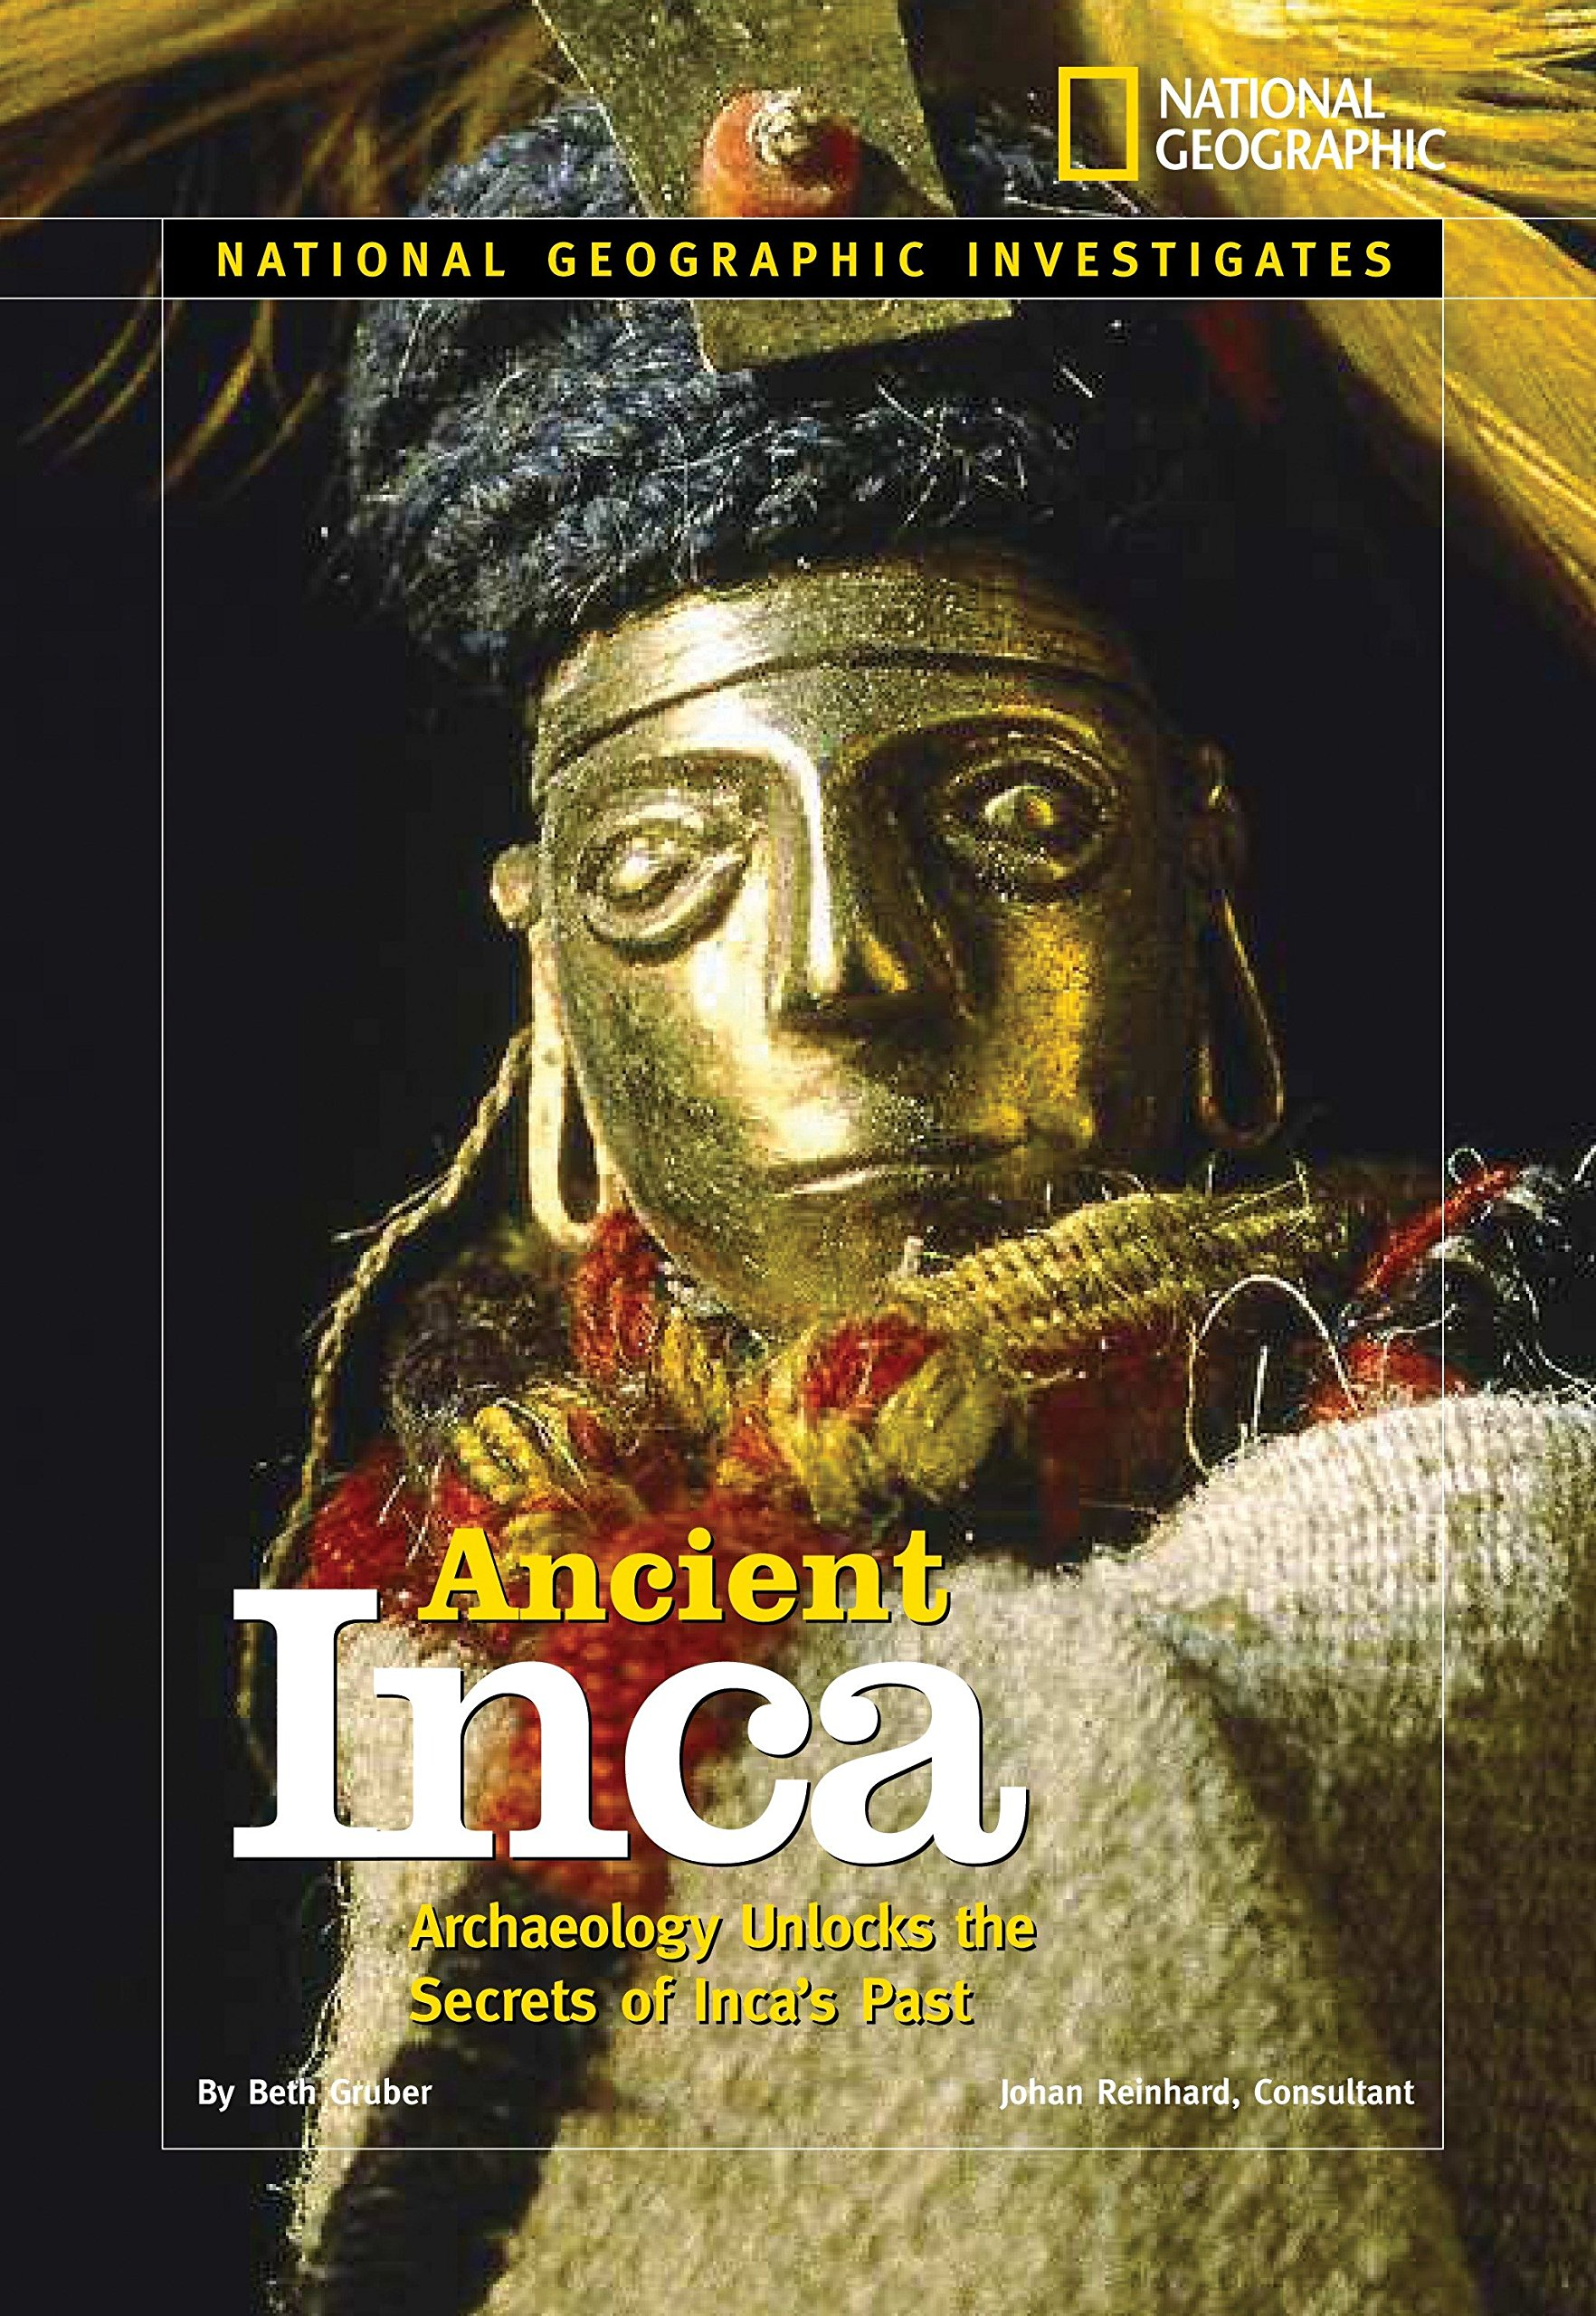 National Geographic Investigates: Ancient Inca: Archaeology Unlocks the Secrets of the Inca's Past PDF